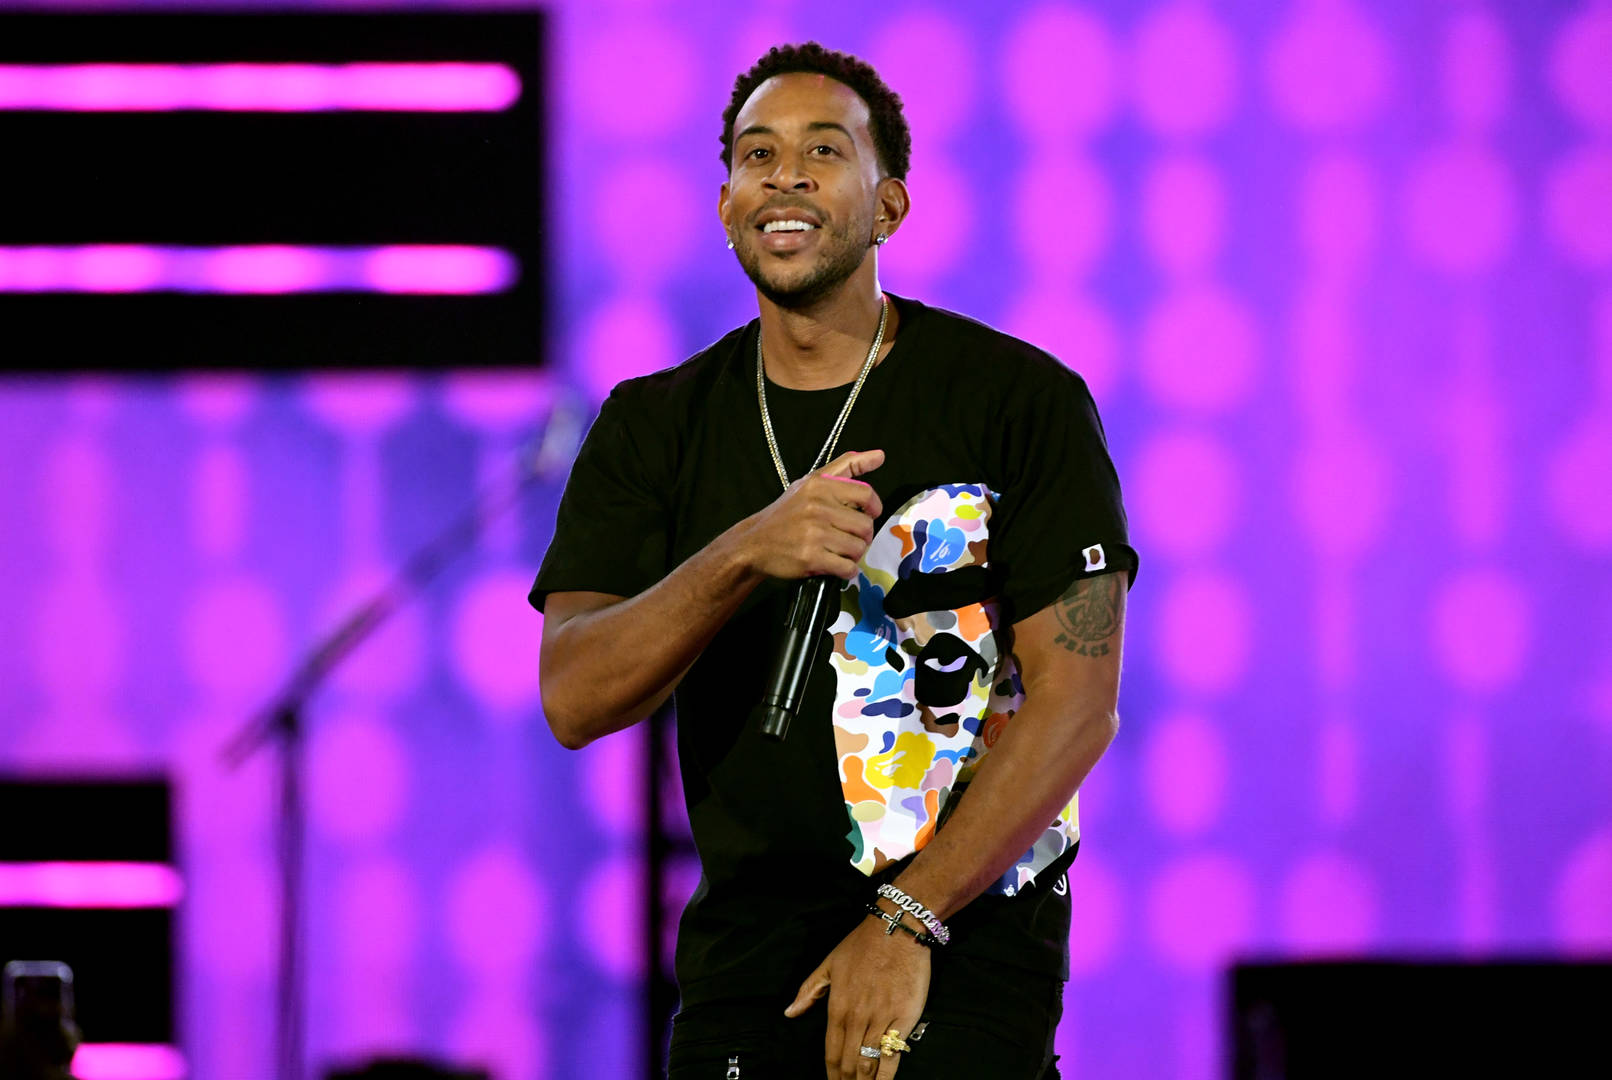 Ludacris Humbly Reflects On Having One Of The Game's Most Triumphant Runs